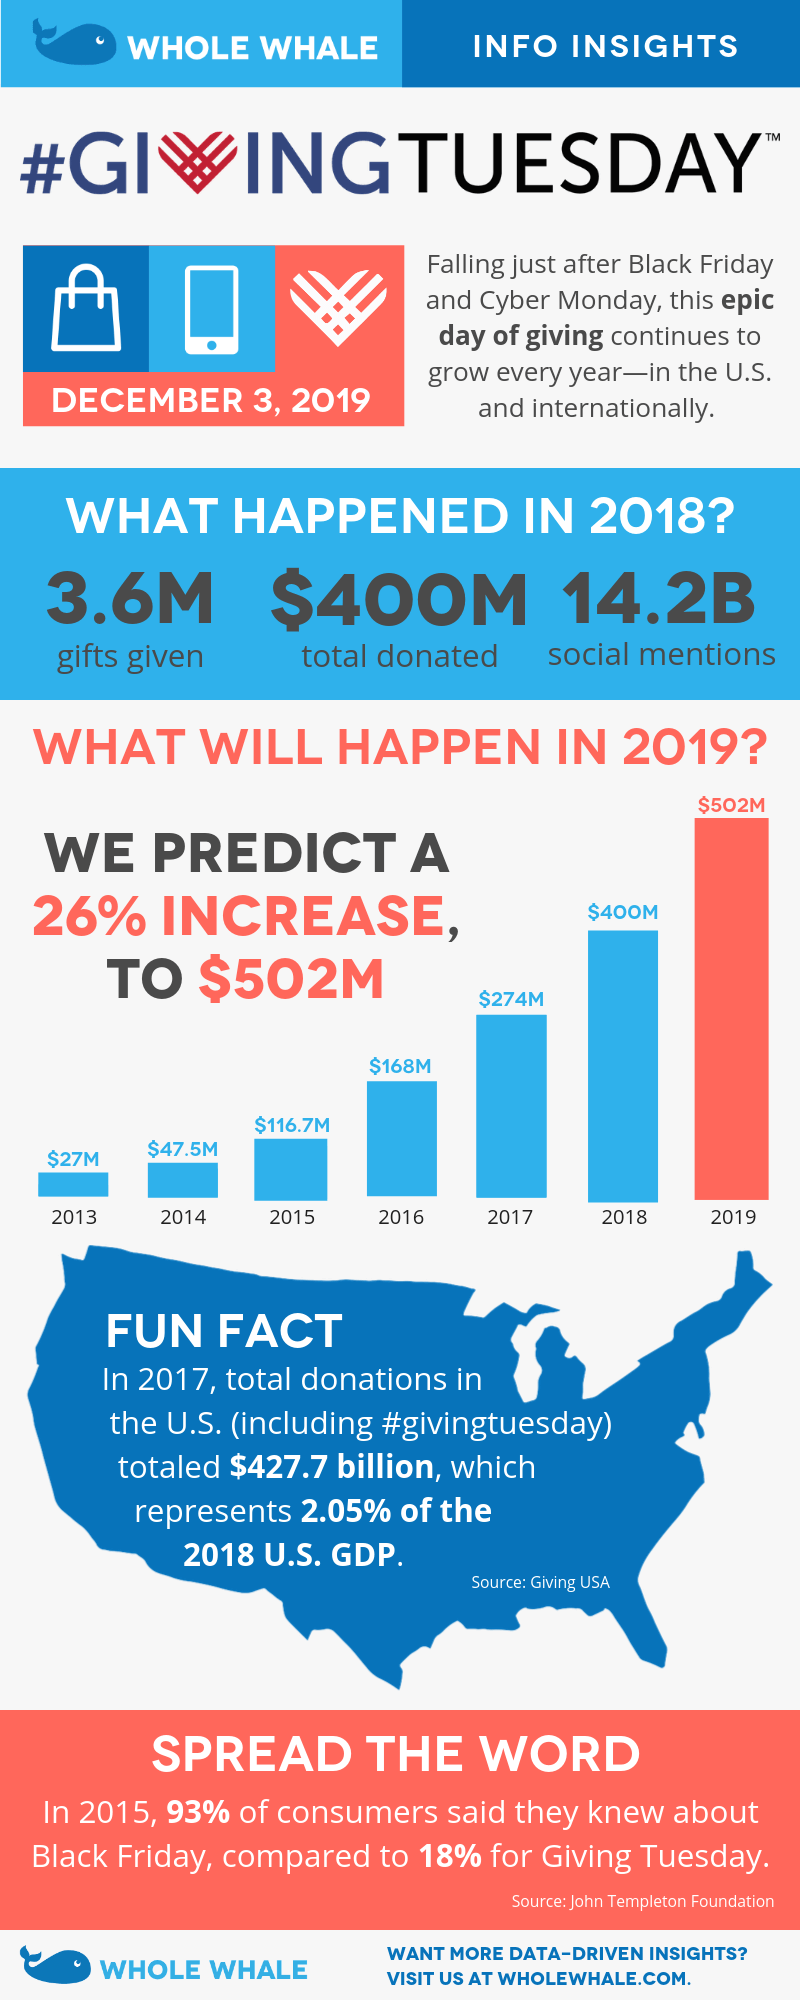 2019 Giving Tuesday Predictions